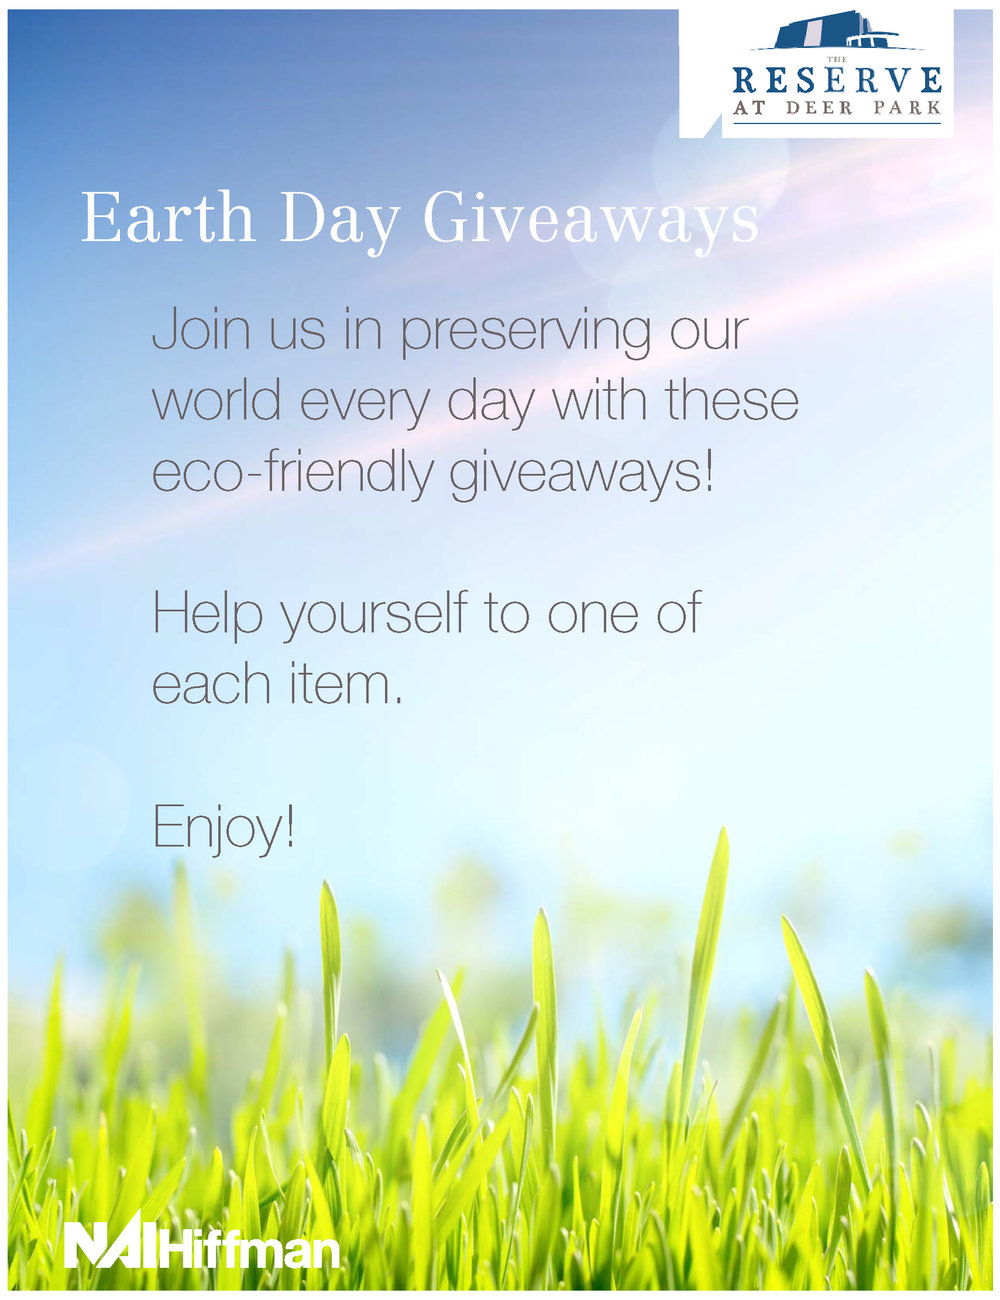 Earth Day Giveaways_Revised.jpg